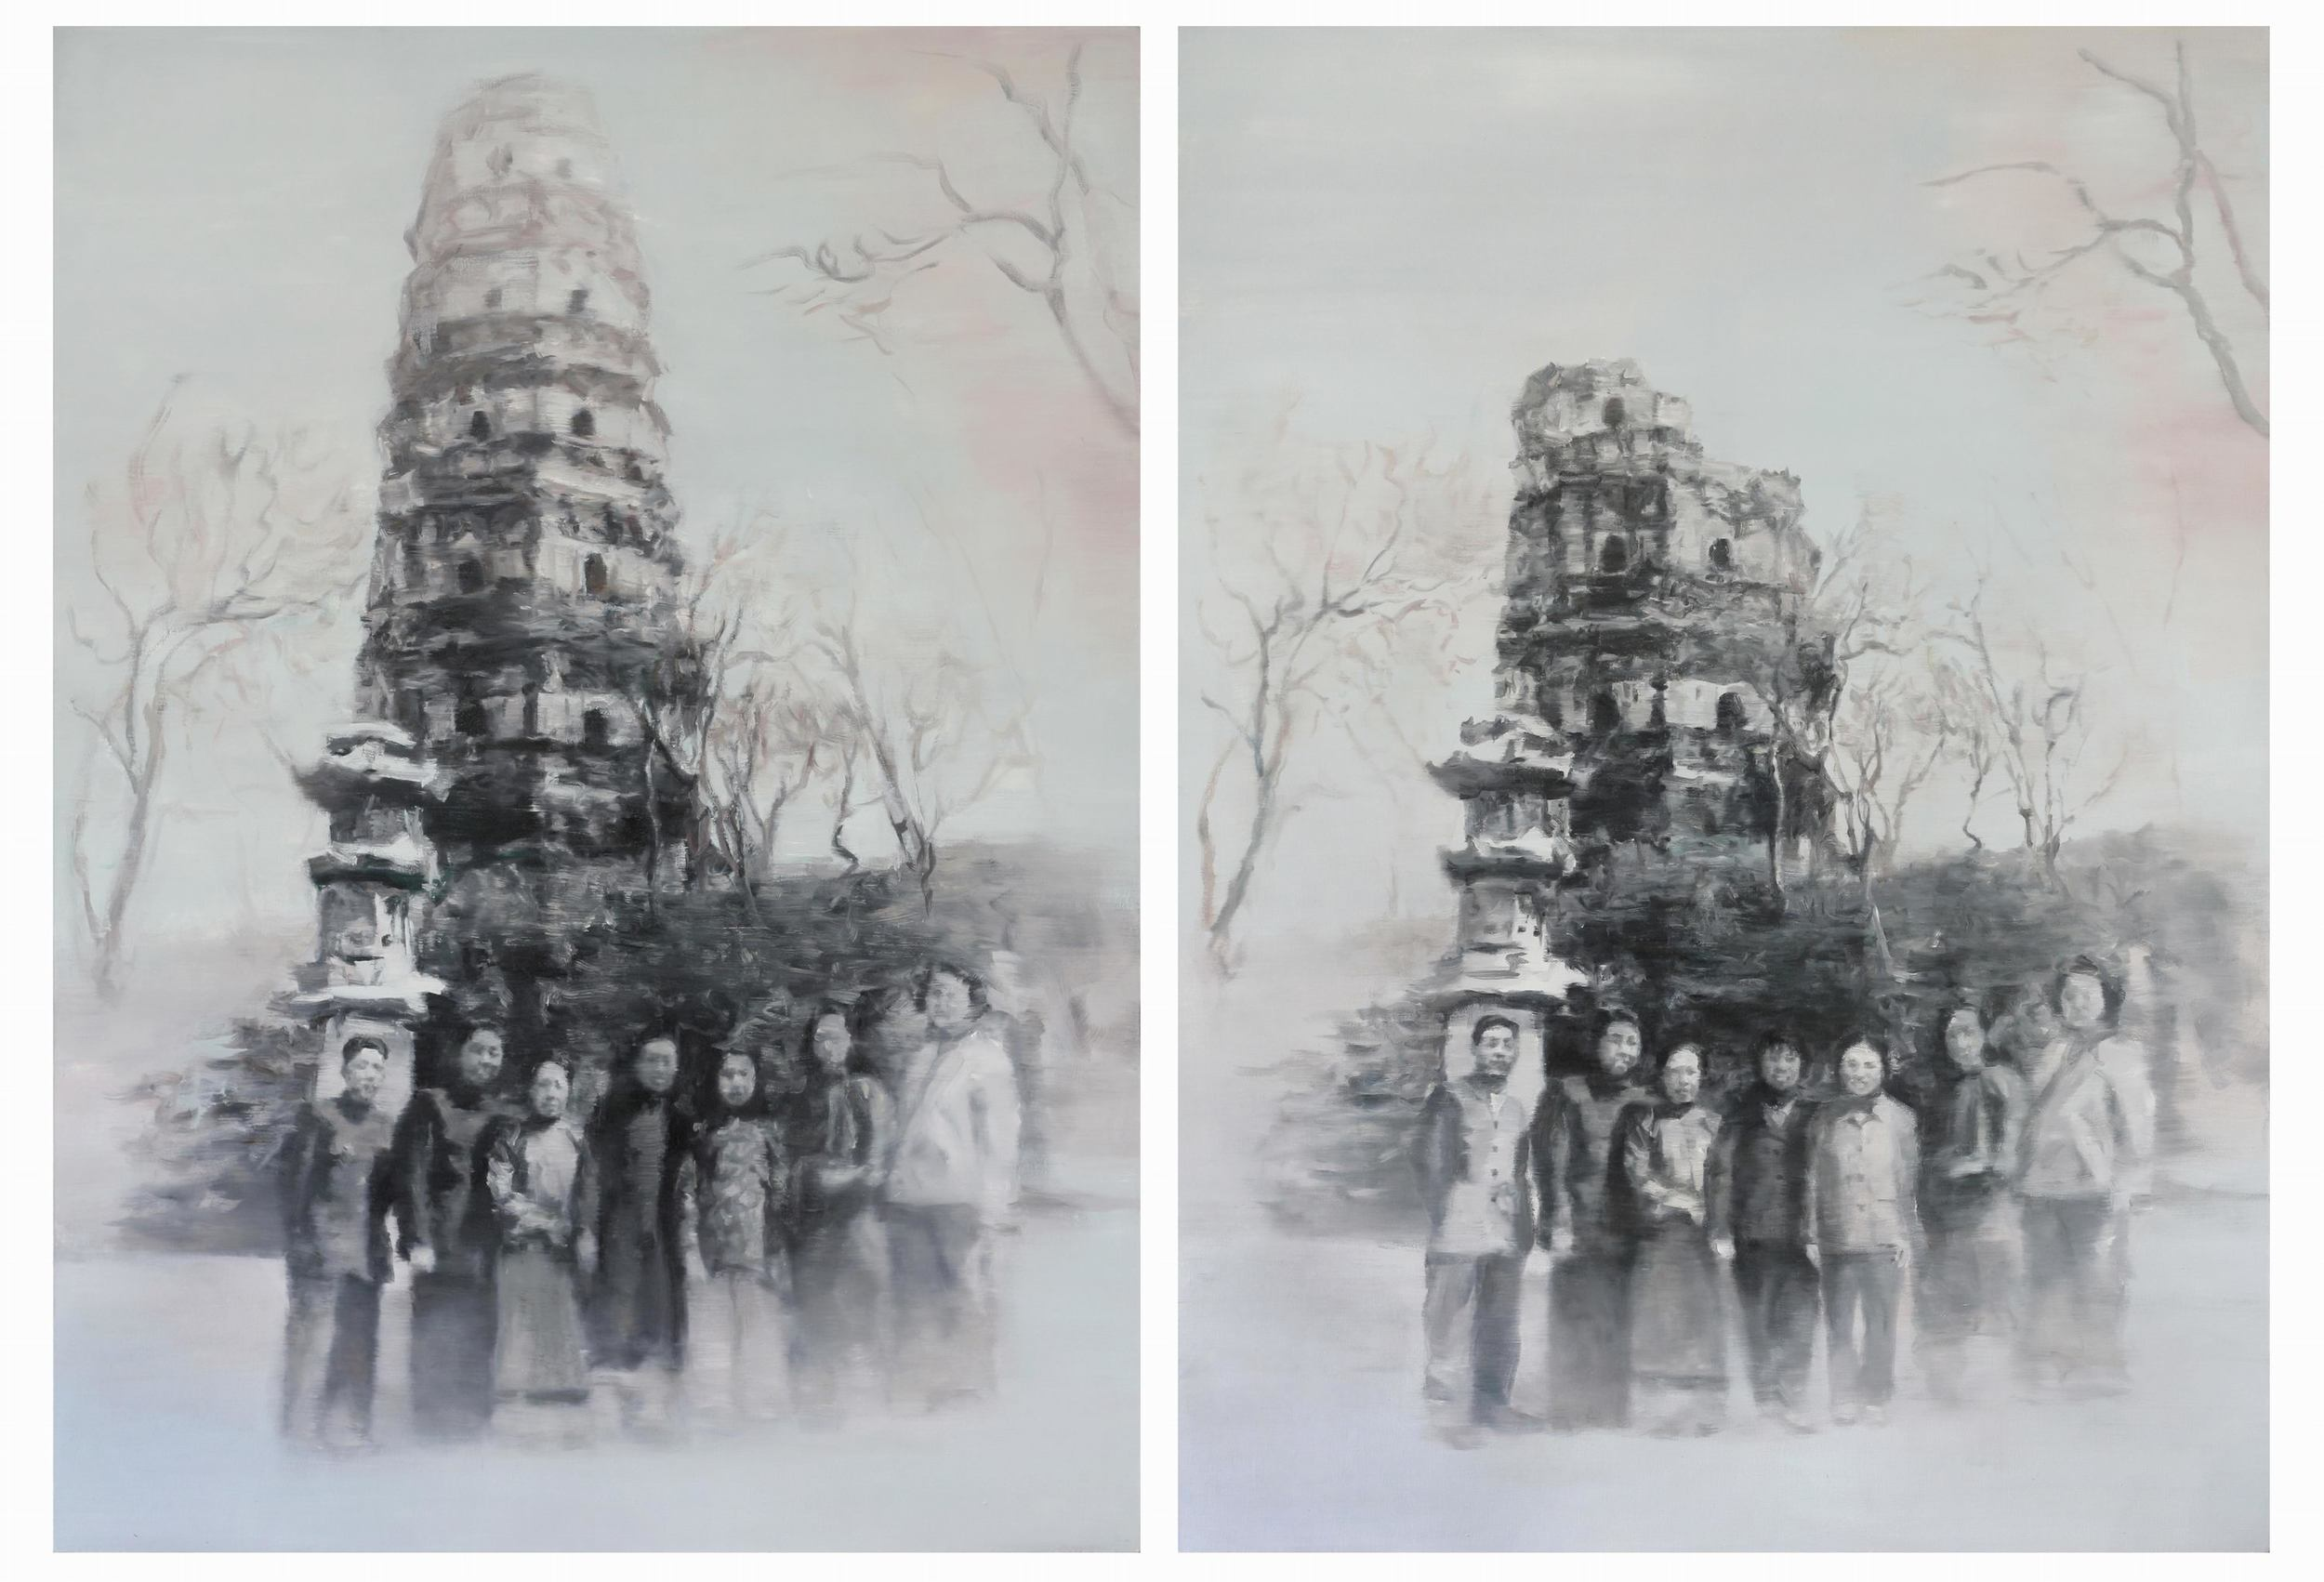 Li Qing 李青, Finding Differences · Pagoda (There are 4 differences in the two paintings) 大家来找碴 · 浮图 (两图有四处不同), 2006, Oil on canvas 布面油画